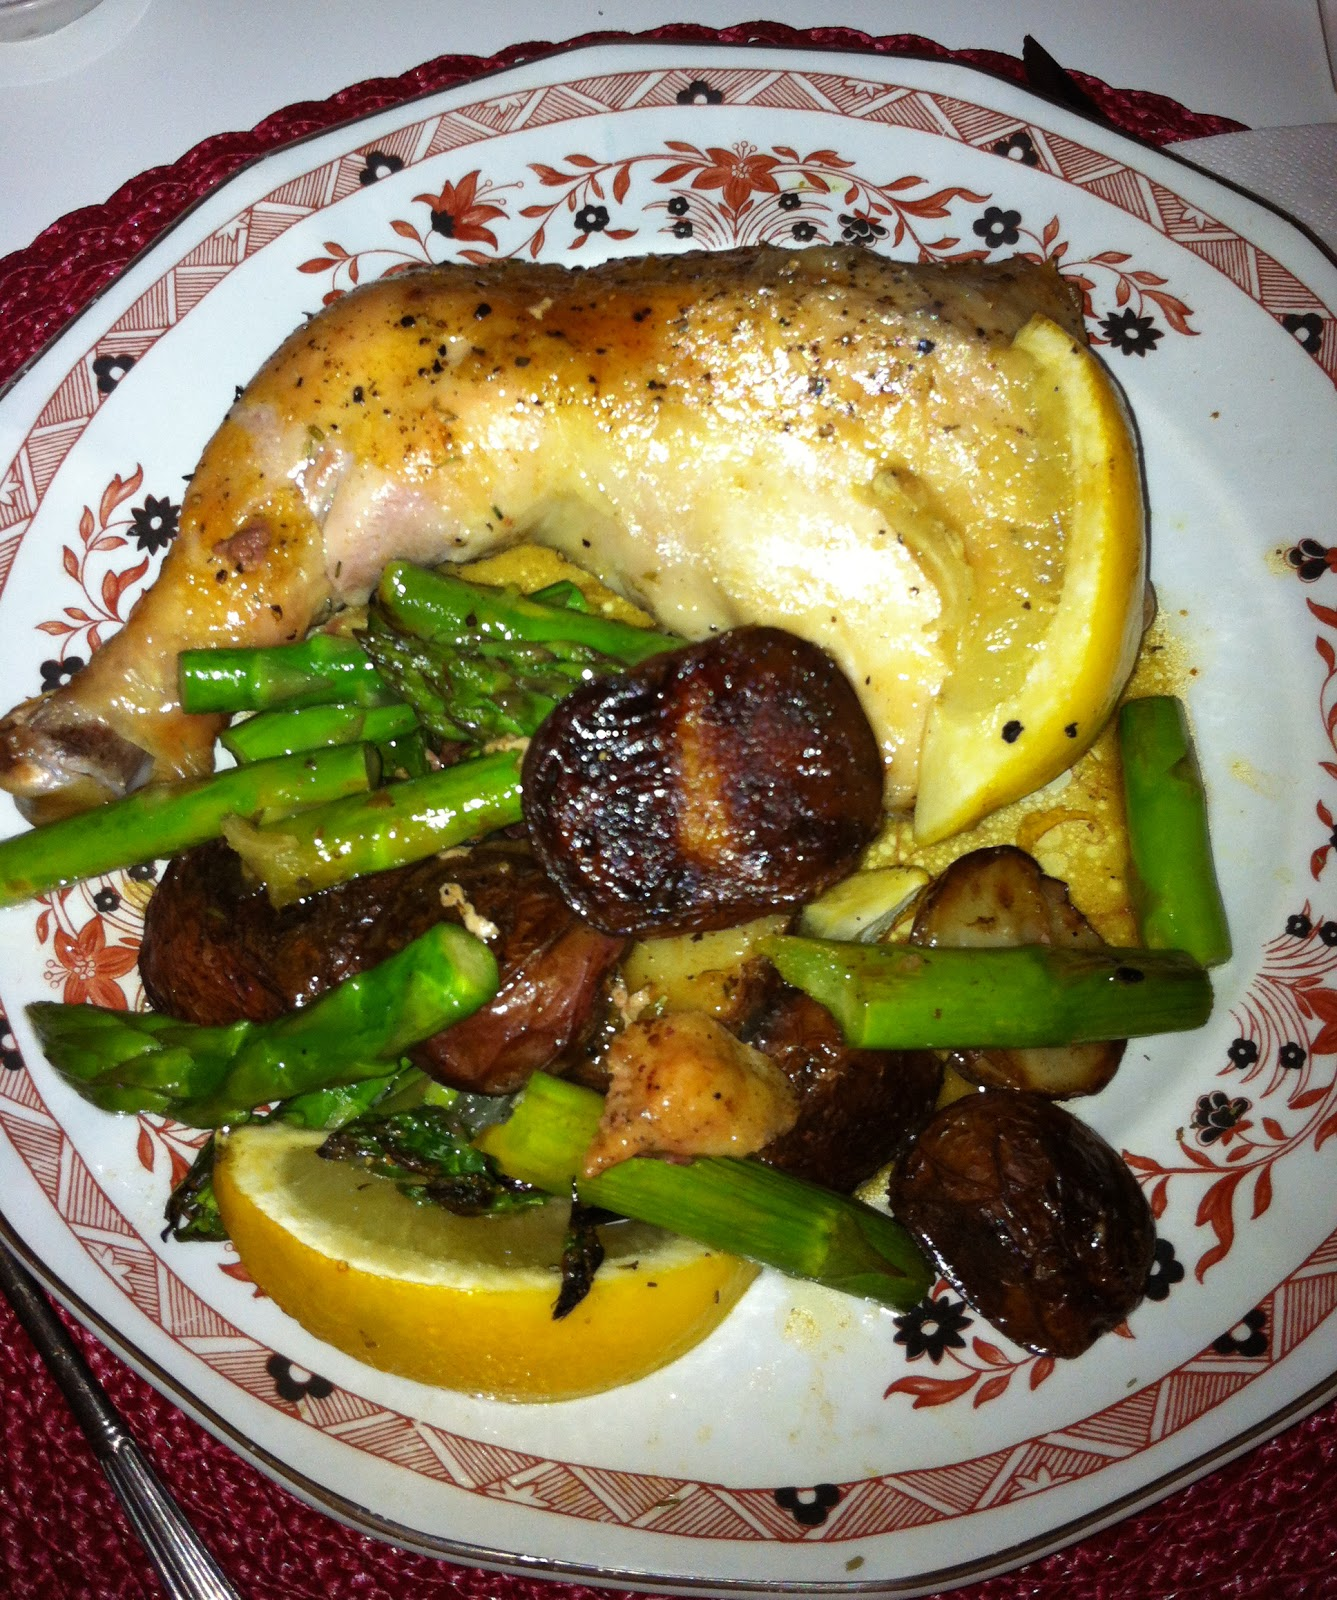 Sybil's Spoon: Roasted chicken with potatoes, asparagus ...